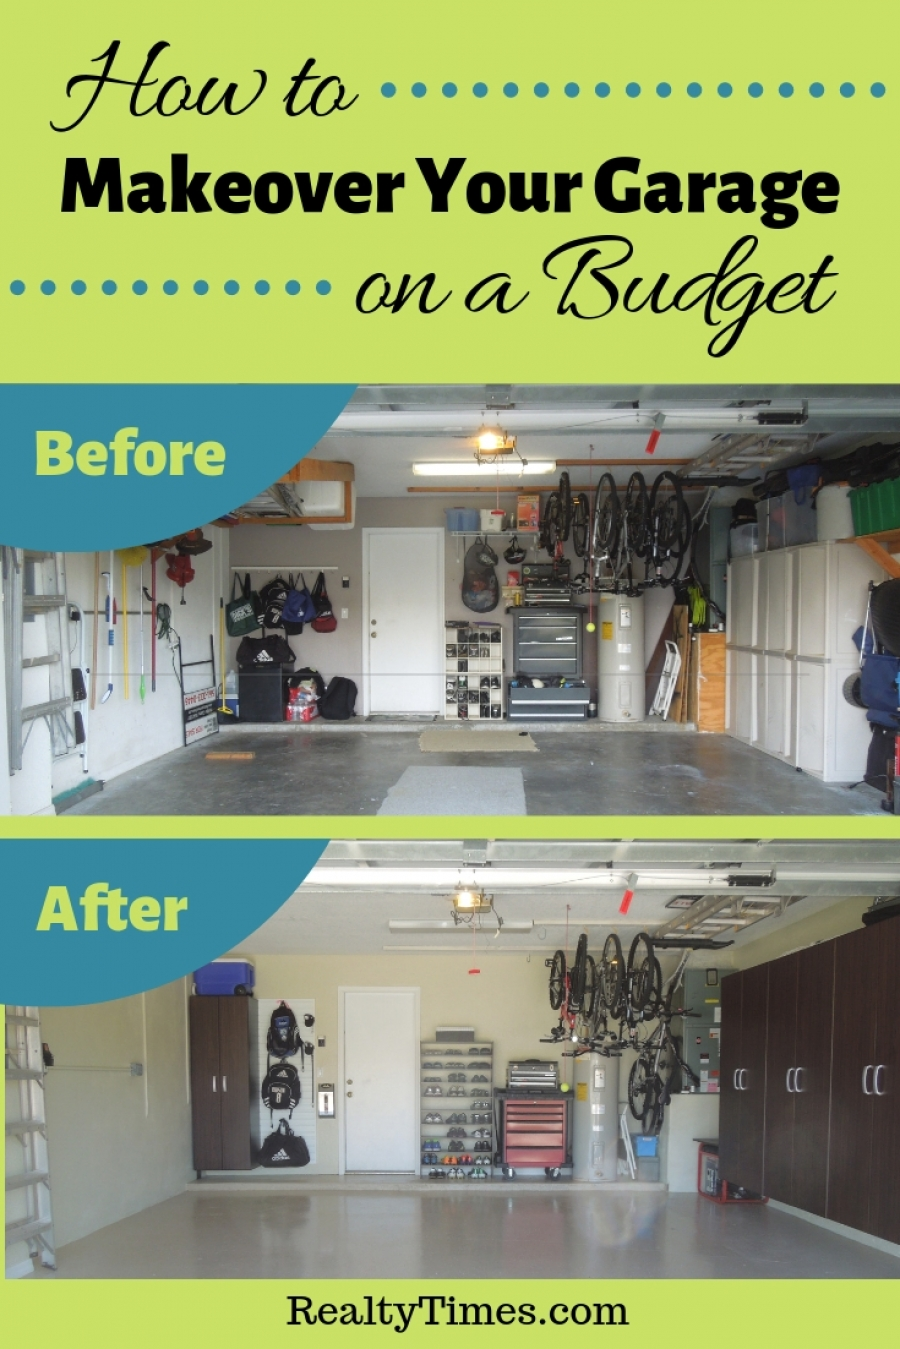 How to Makeover Your Garage on a Budget